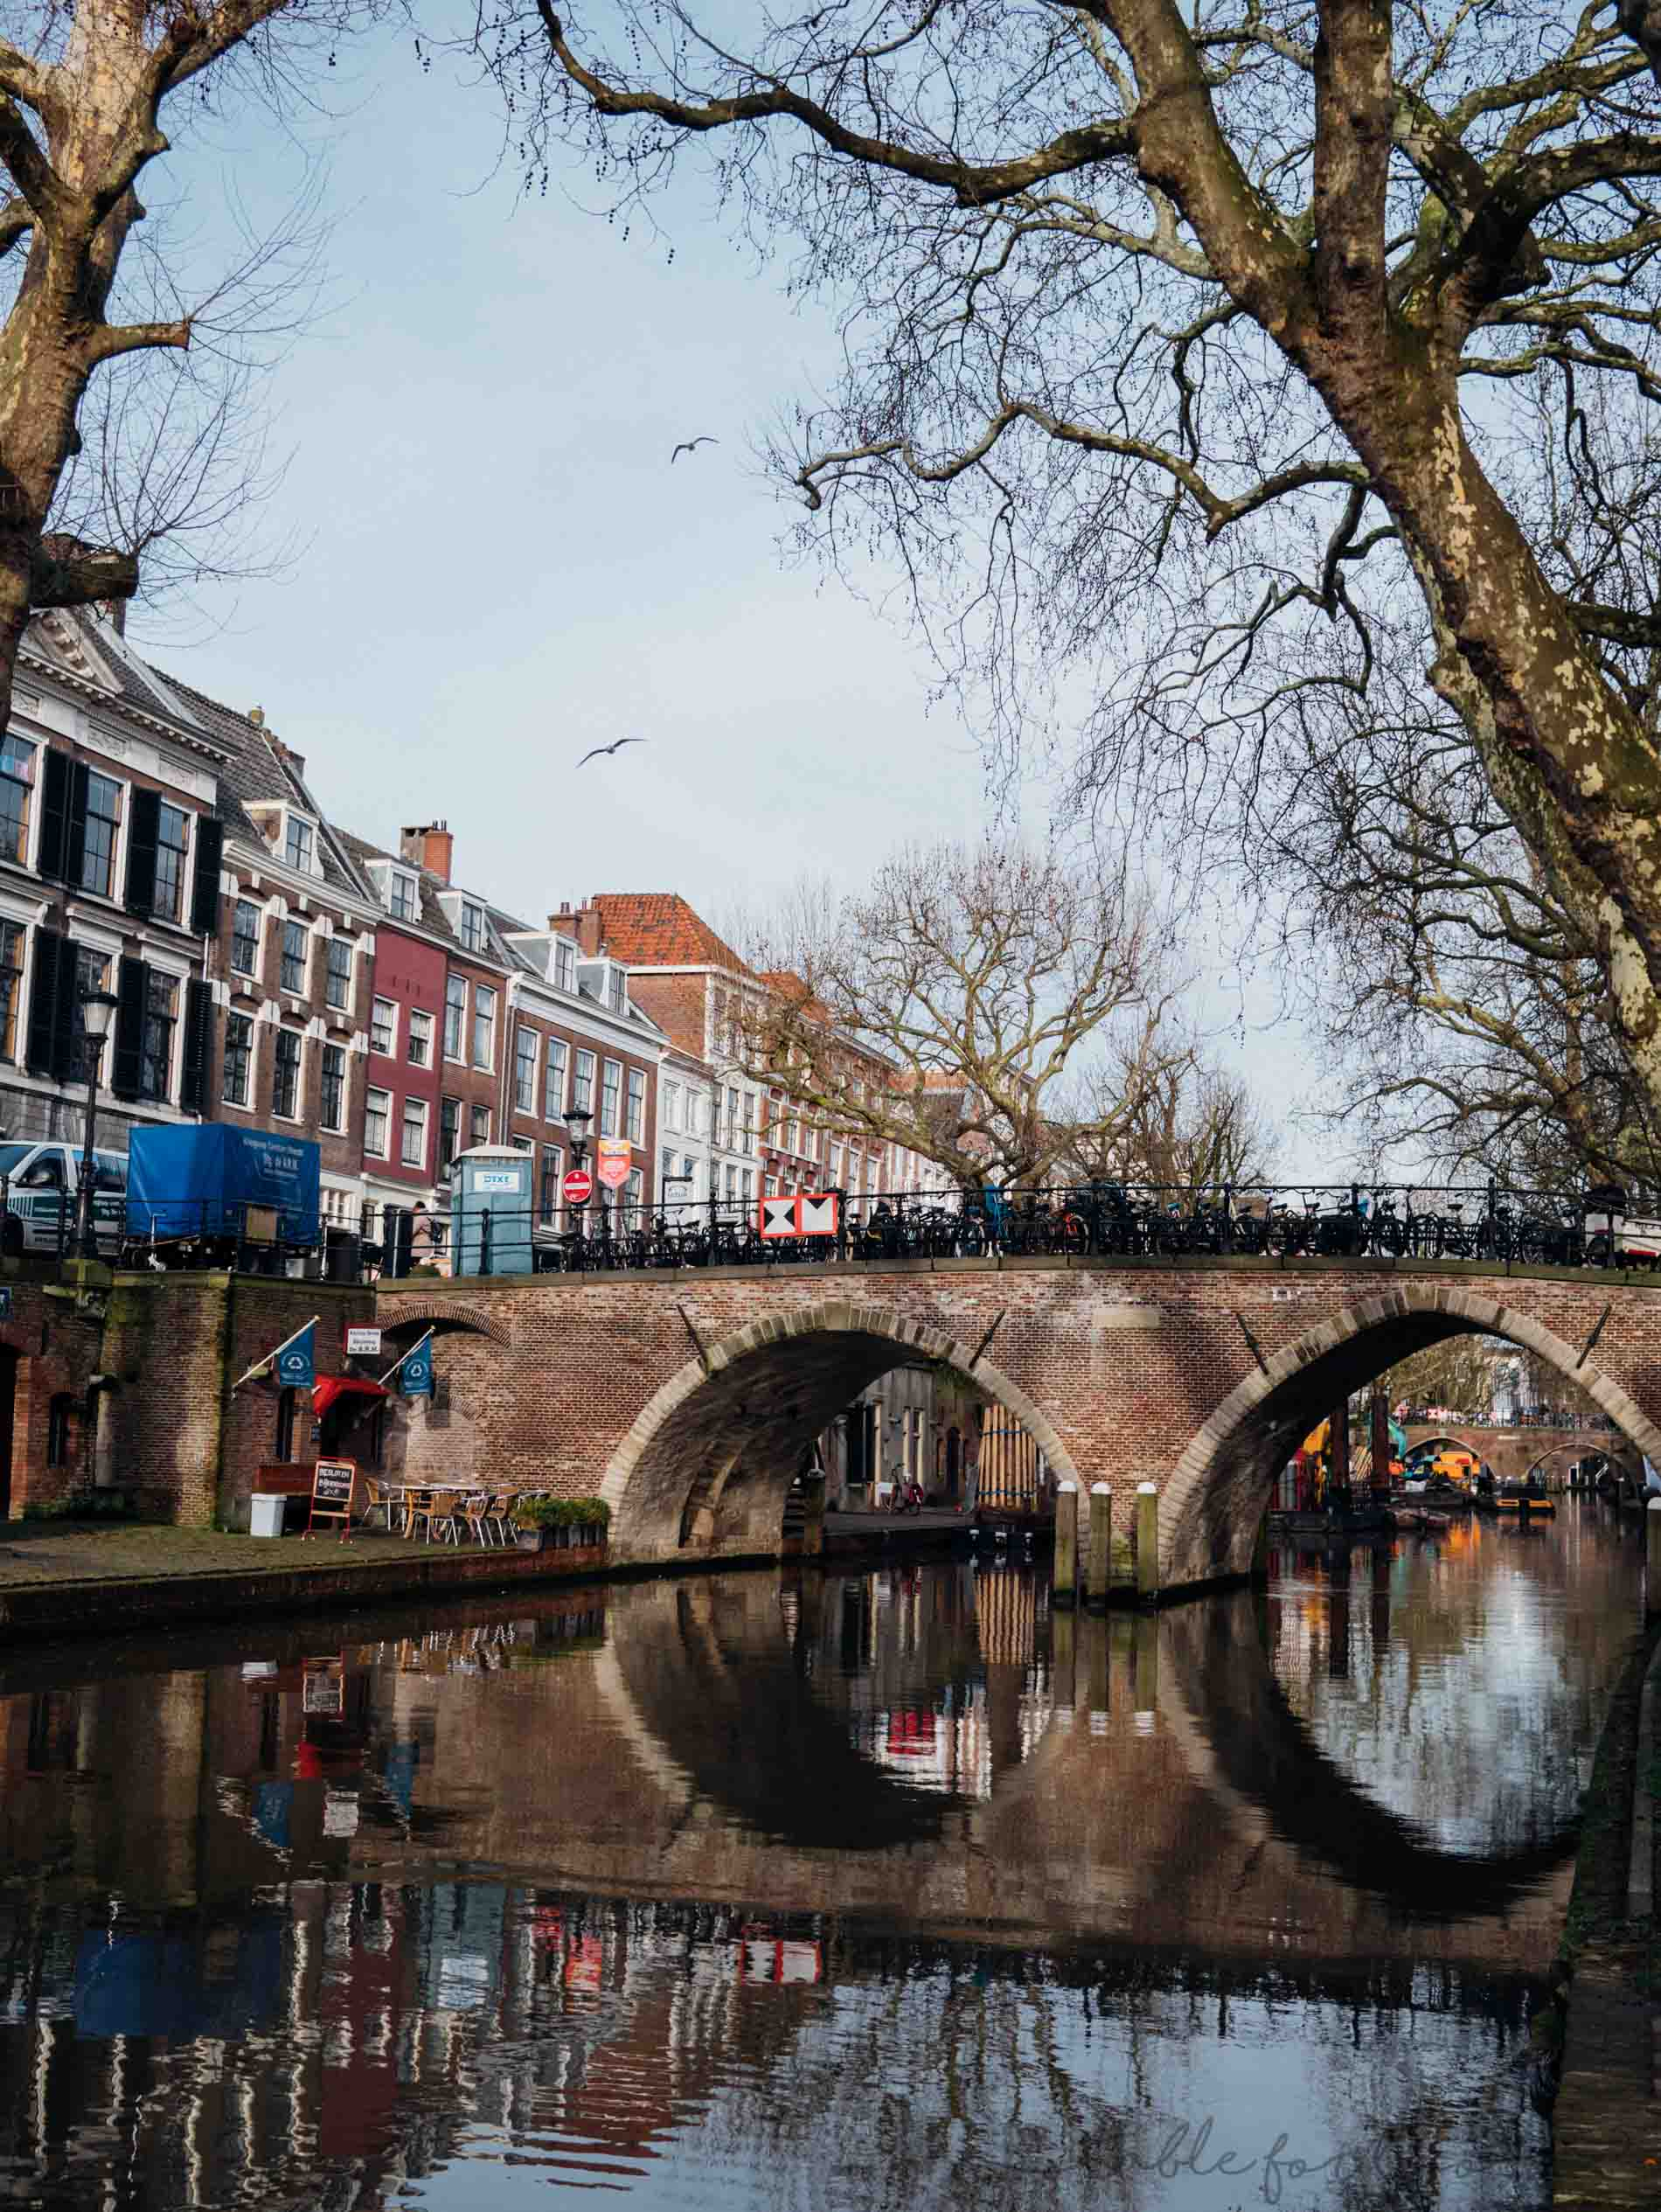 Utrecht, Netherlands is a quaint little scenic city 15 minutes, by train, outside of Amsterdam. It is so scenic and has the cutest cafes. Definitely worth a day trip especially since it's a 15 minute train ride!